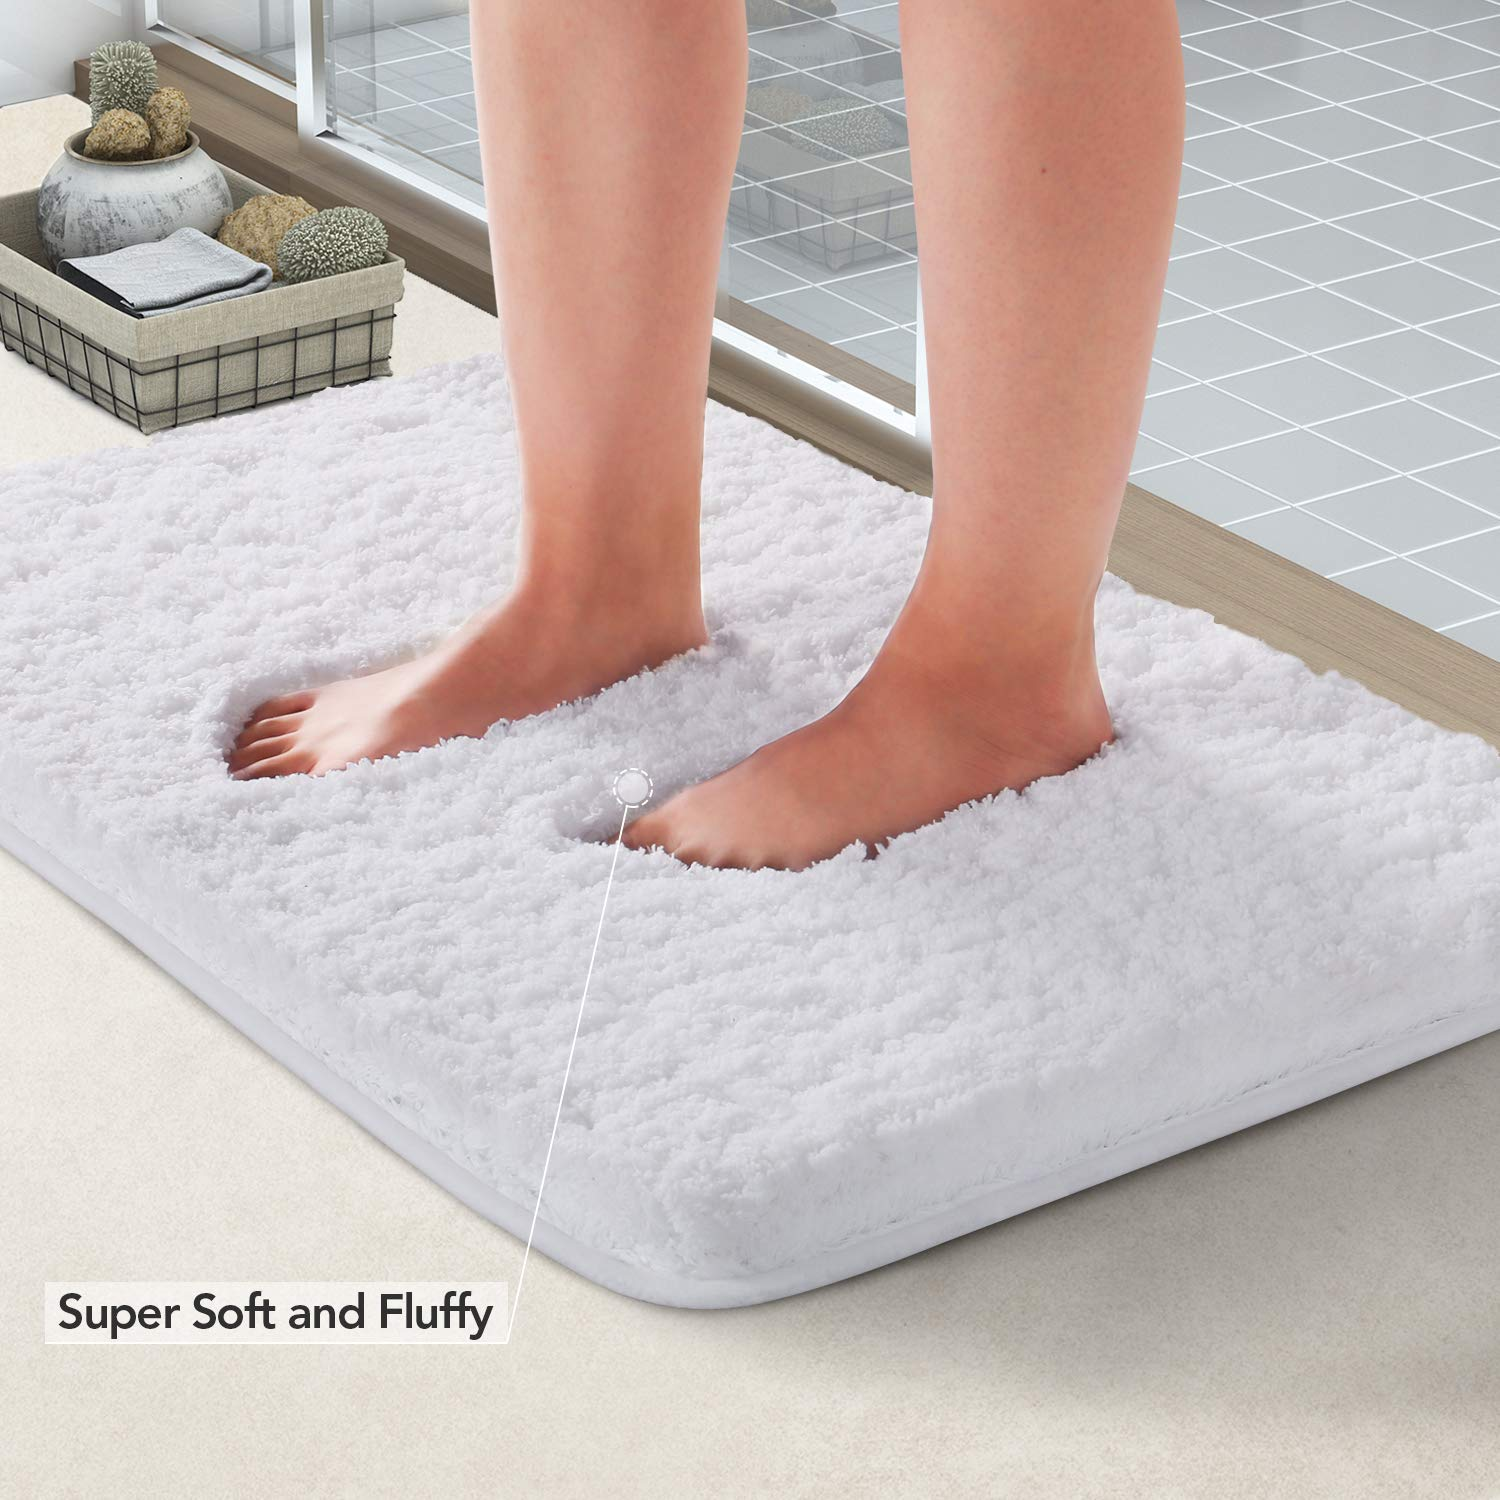 Lifewit Bath Mat White, Microfiber Soft Shag Super Water Absorbent Non-Slip Rubber Bathroom Rug Thick